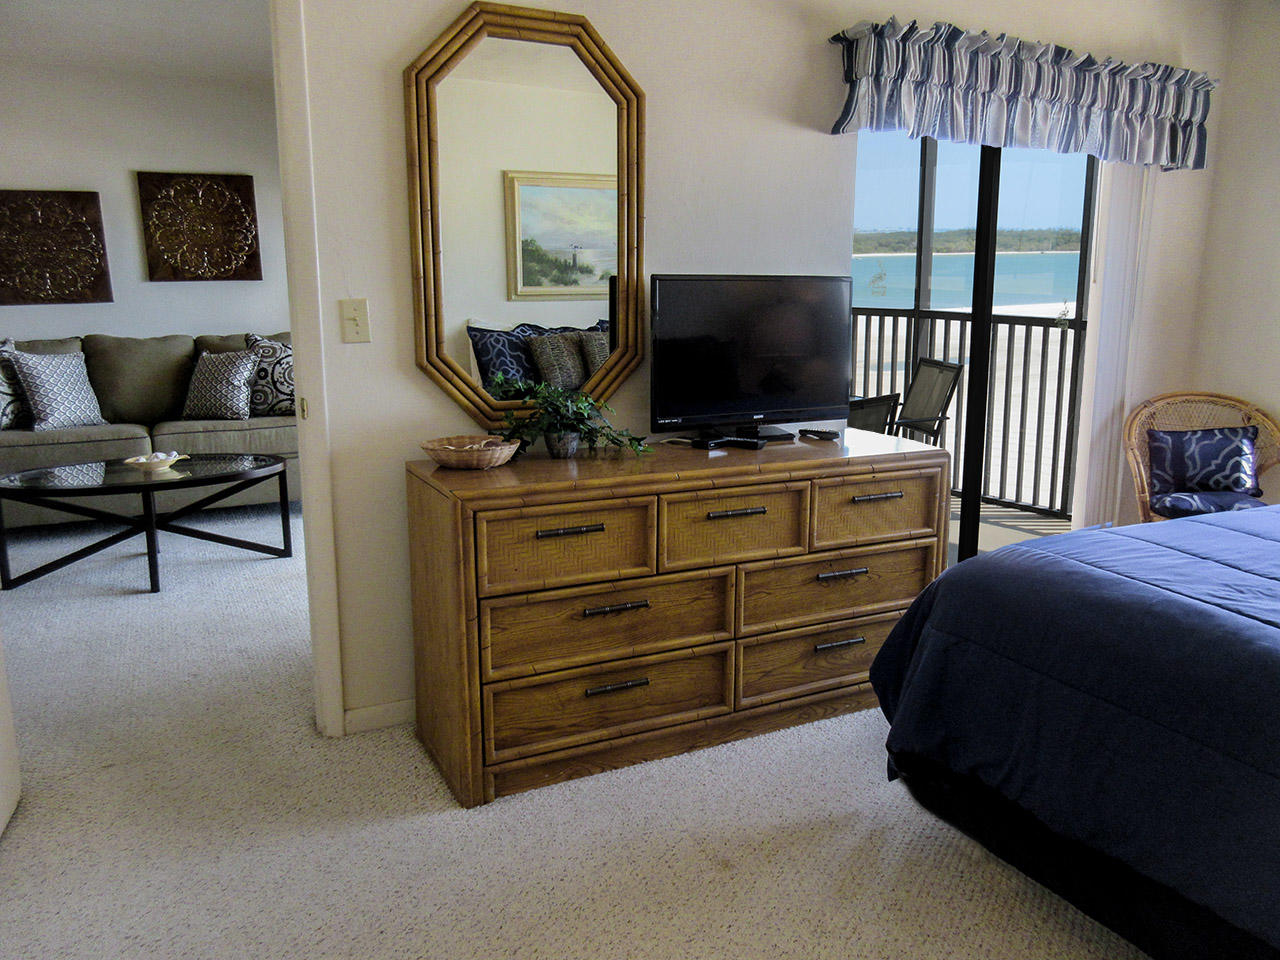 Carlos Pointe 415 Master Bedroom with private lanai access